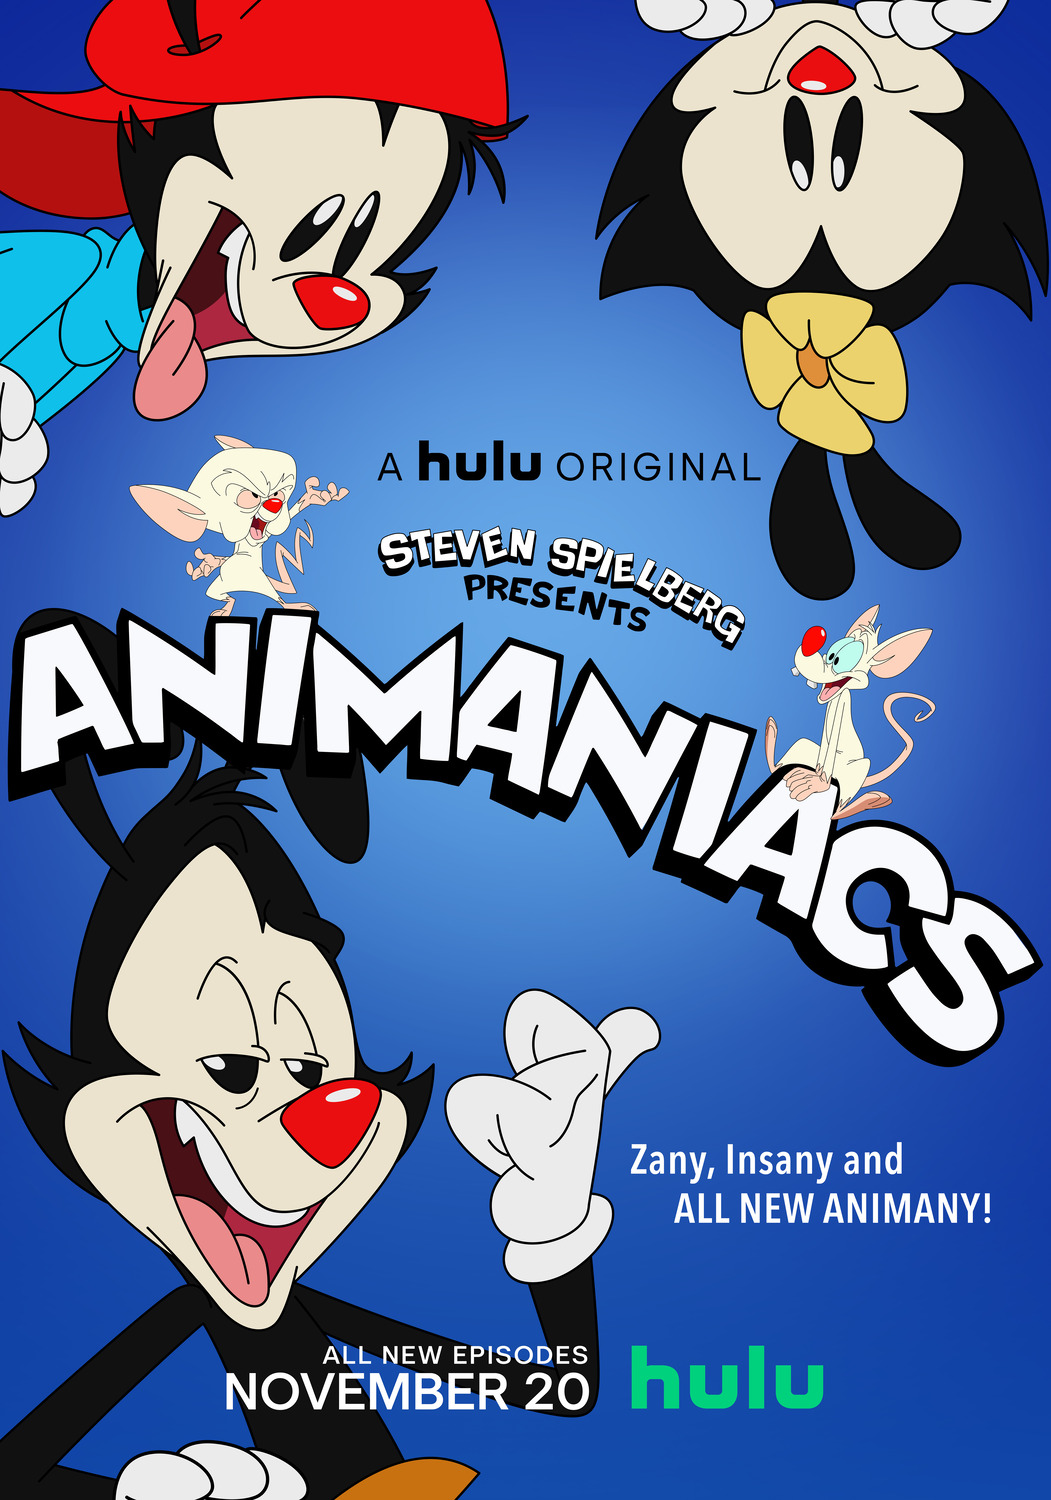 Top 10 Cartoons of All Time